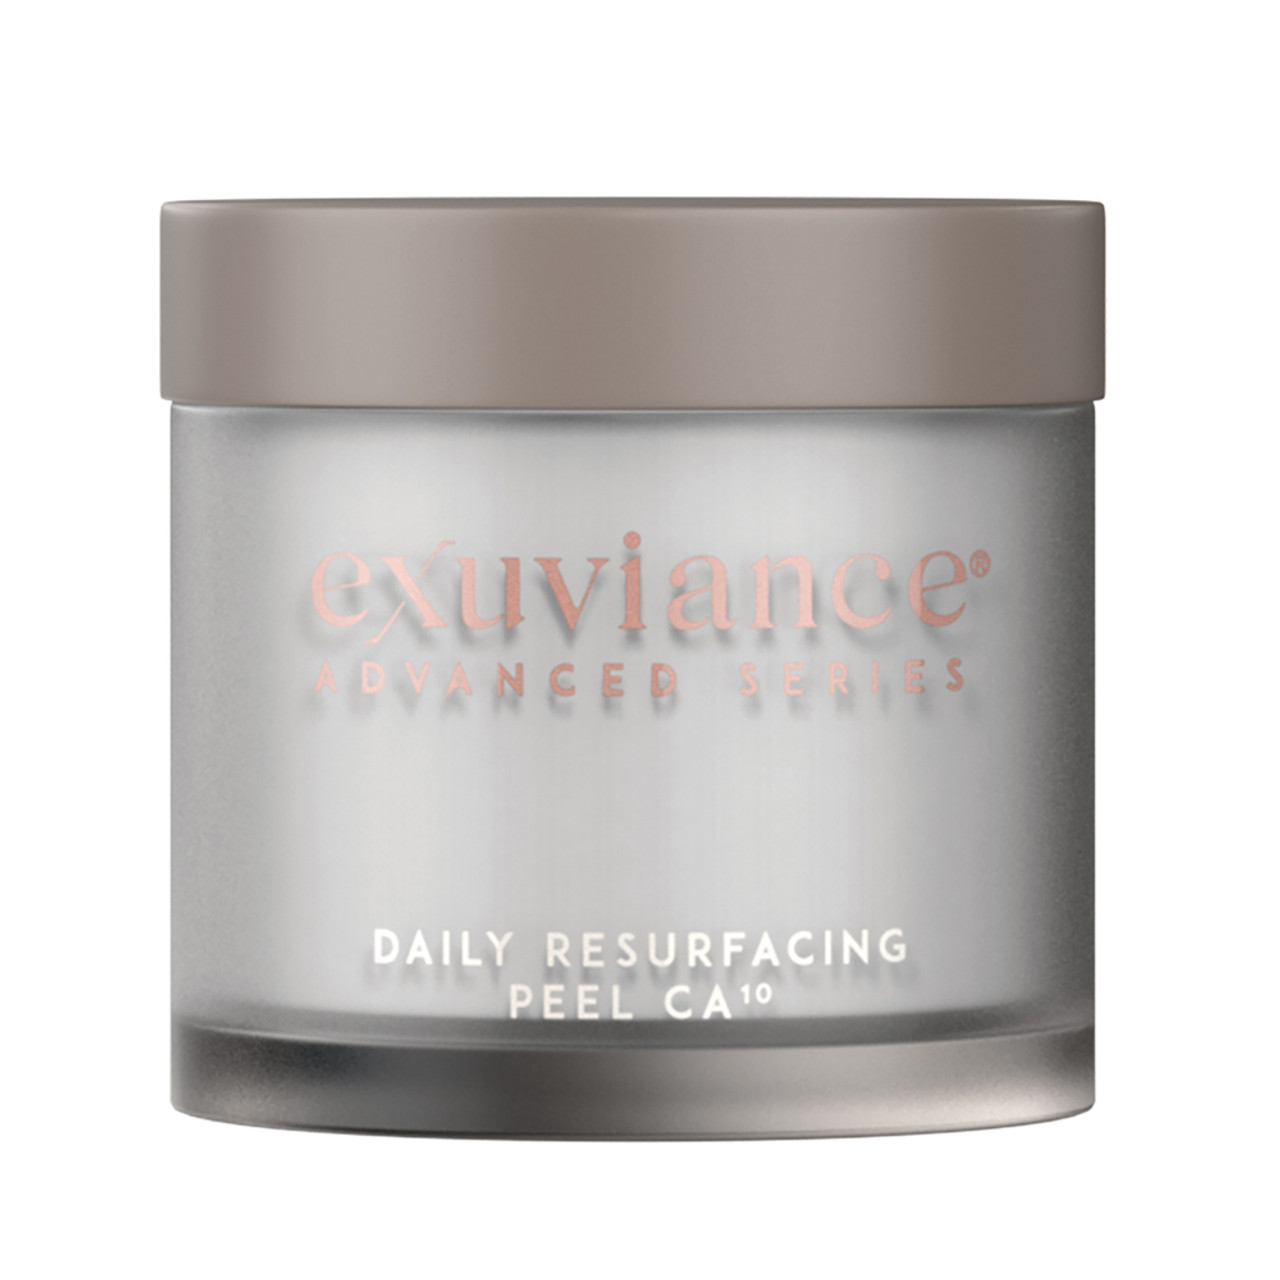 Exuviance Daily Resurfacing Peel CA10 (36 Pads)